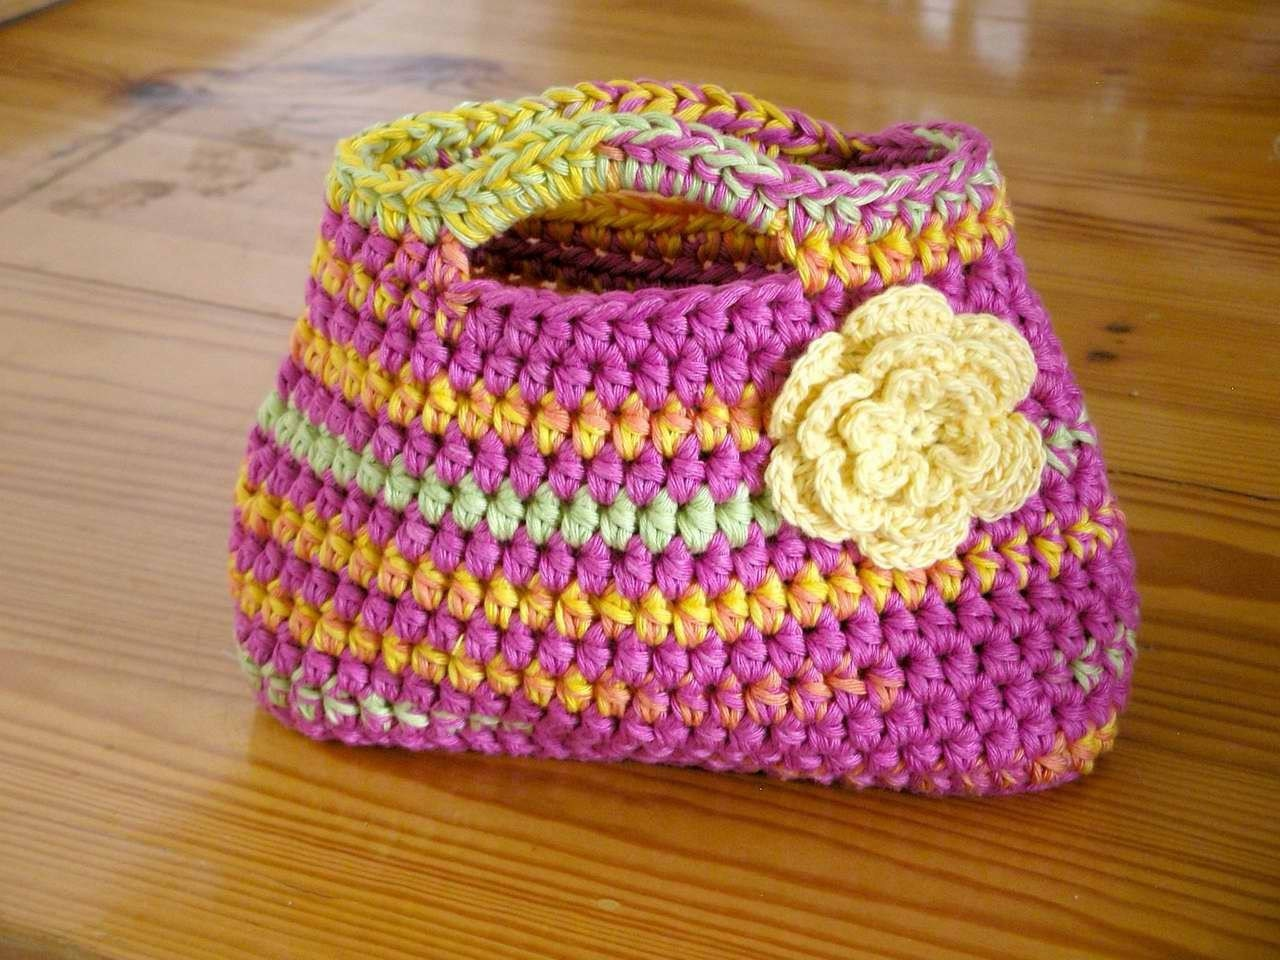 Crochet Bag Making : All Bags & Purses